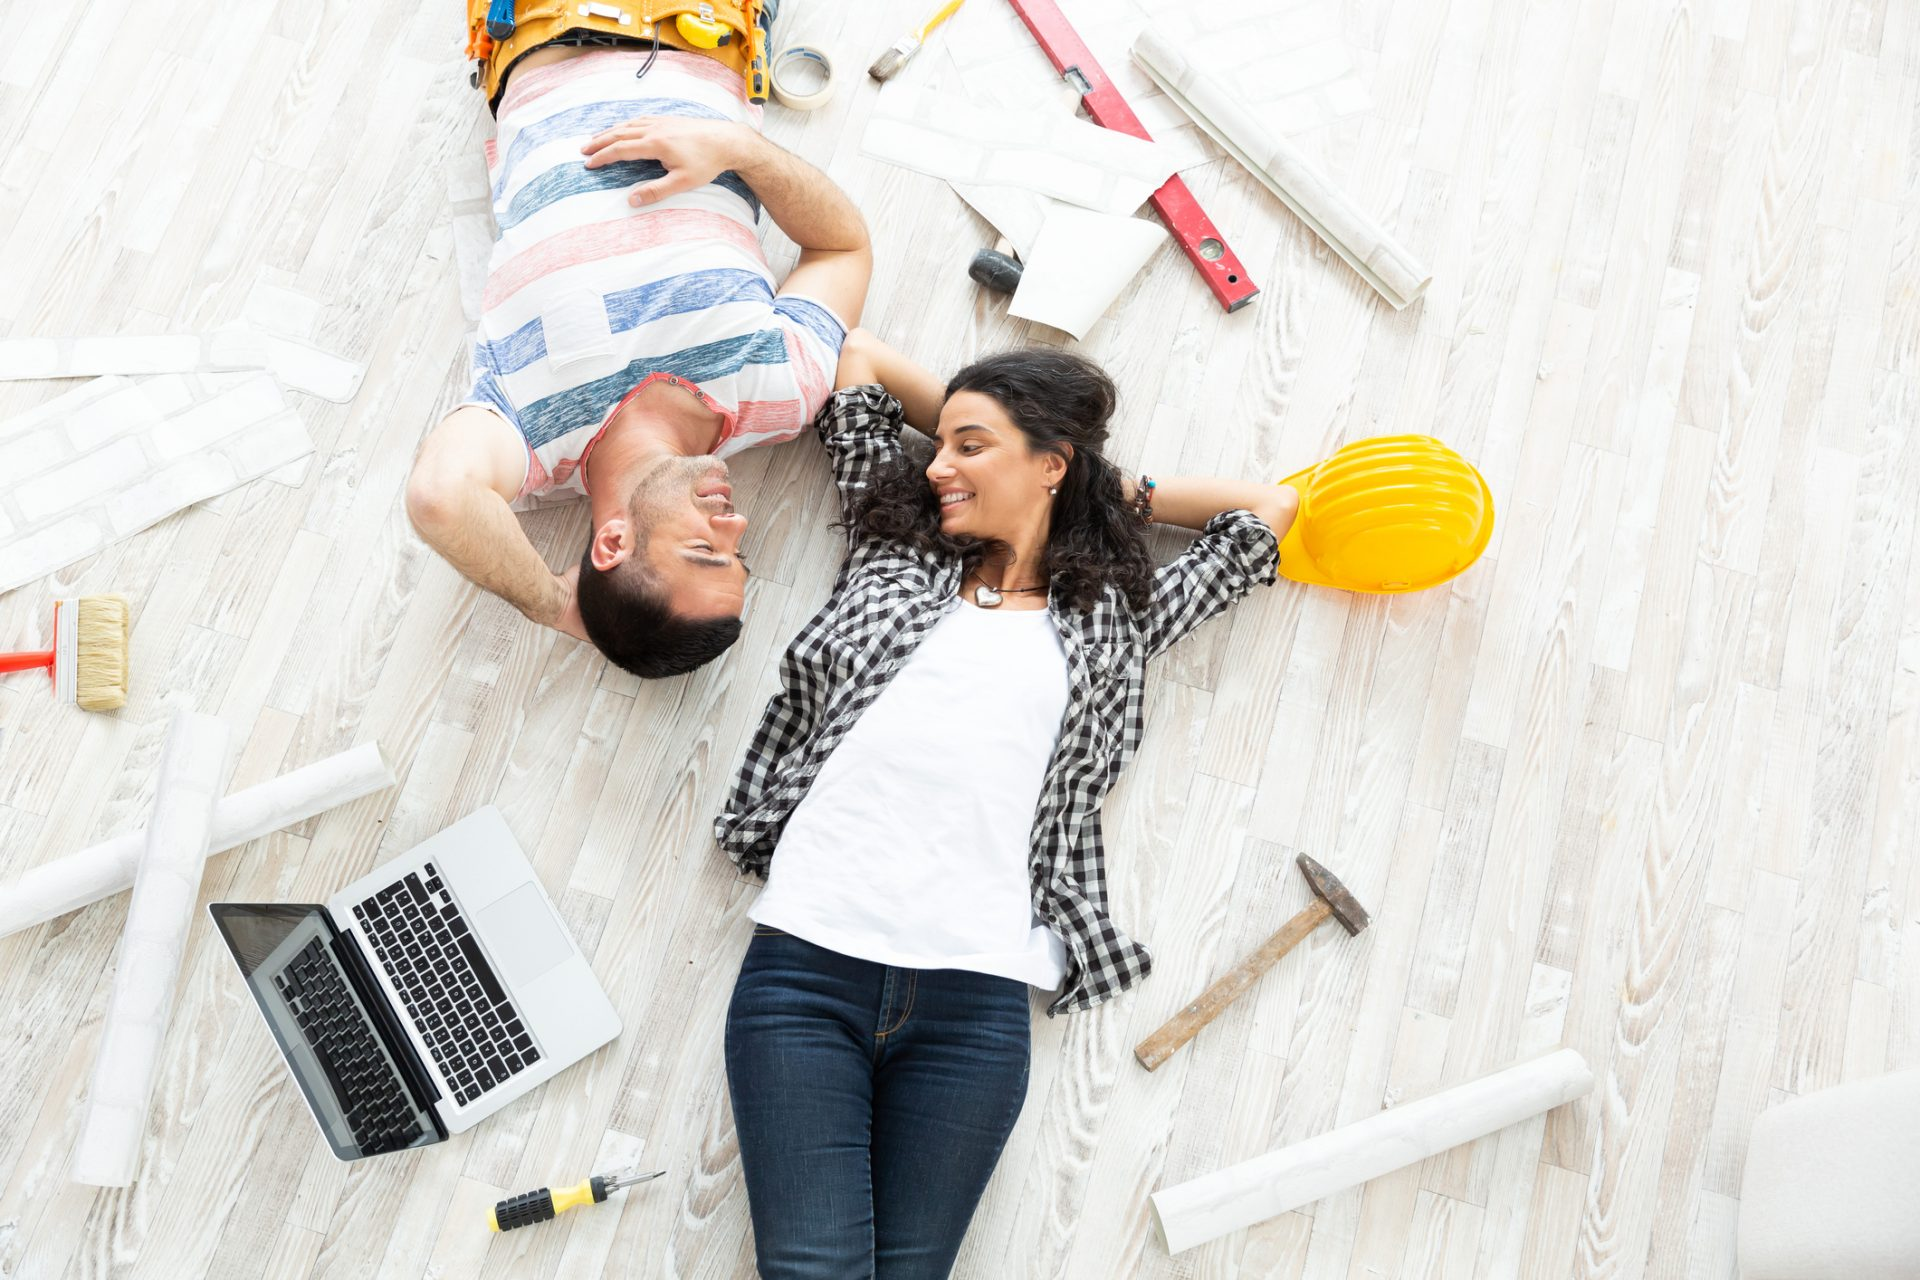 Couple making home improvement, lying down on floor, high angle view.